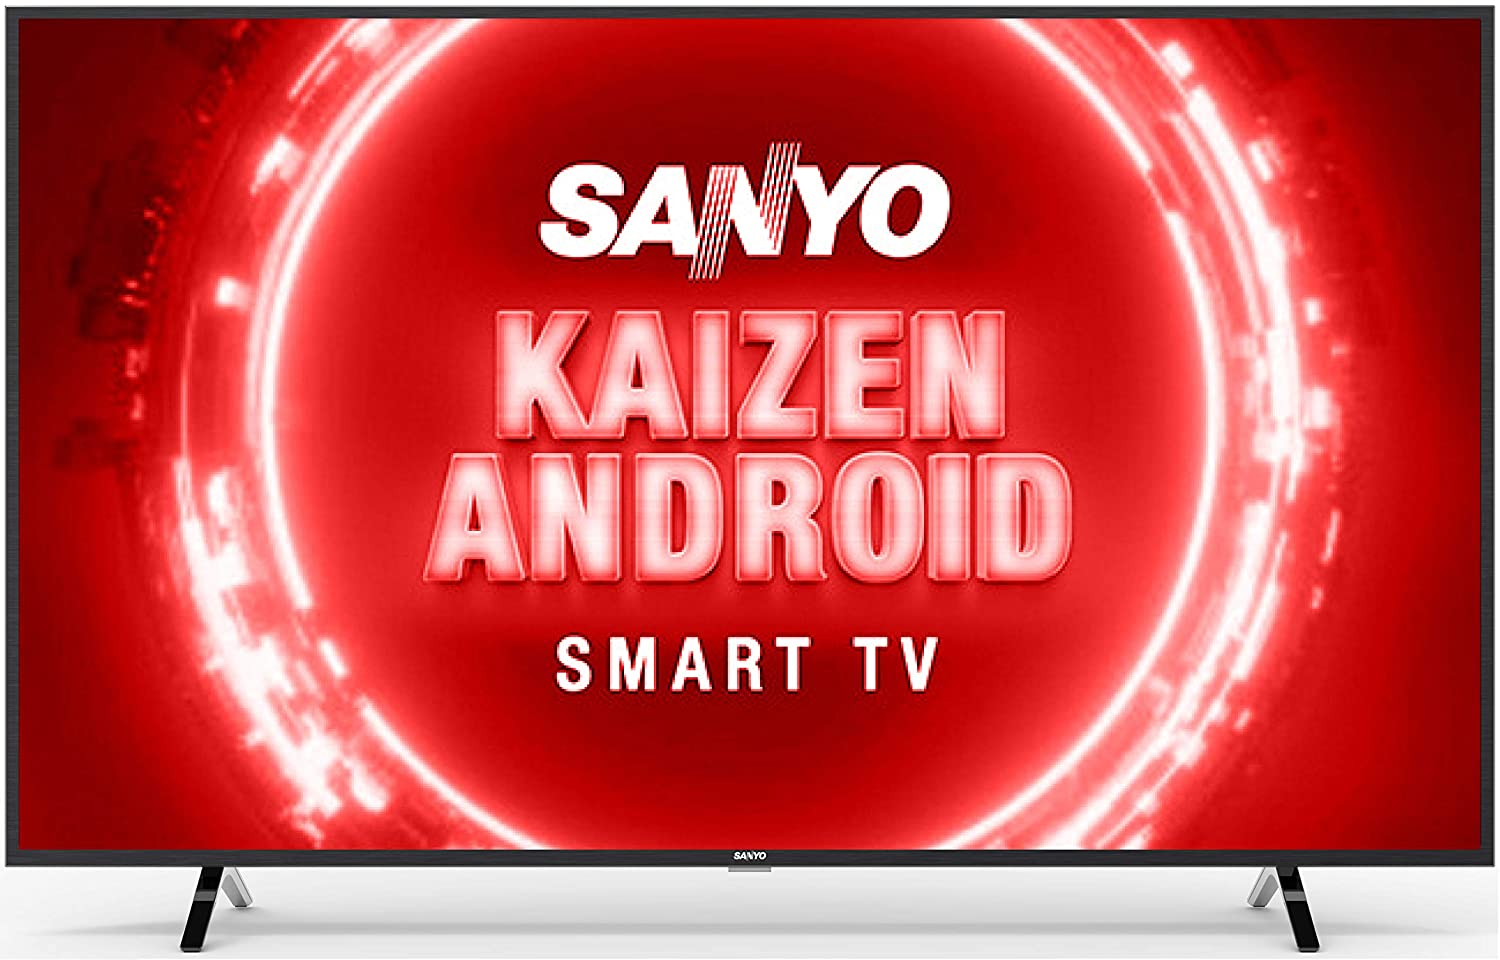 Sanyo 139 cm (55 inches) Kaizen Series 4K Ultra HD Certified Android LED TV